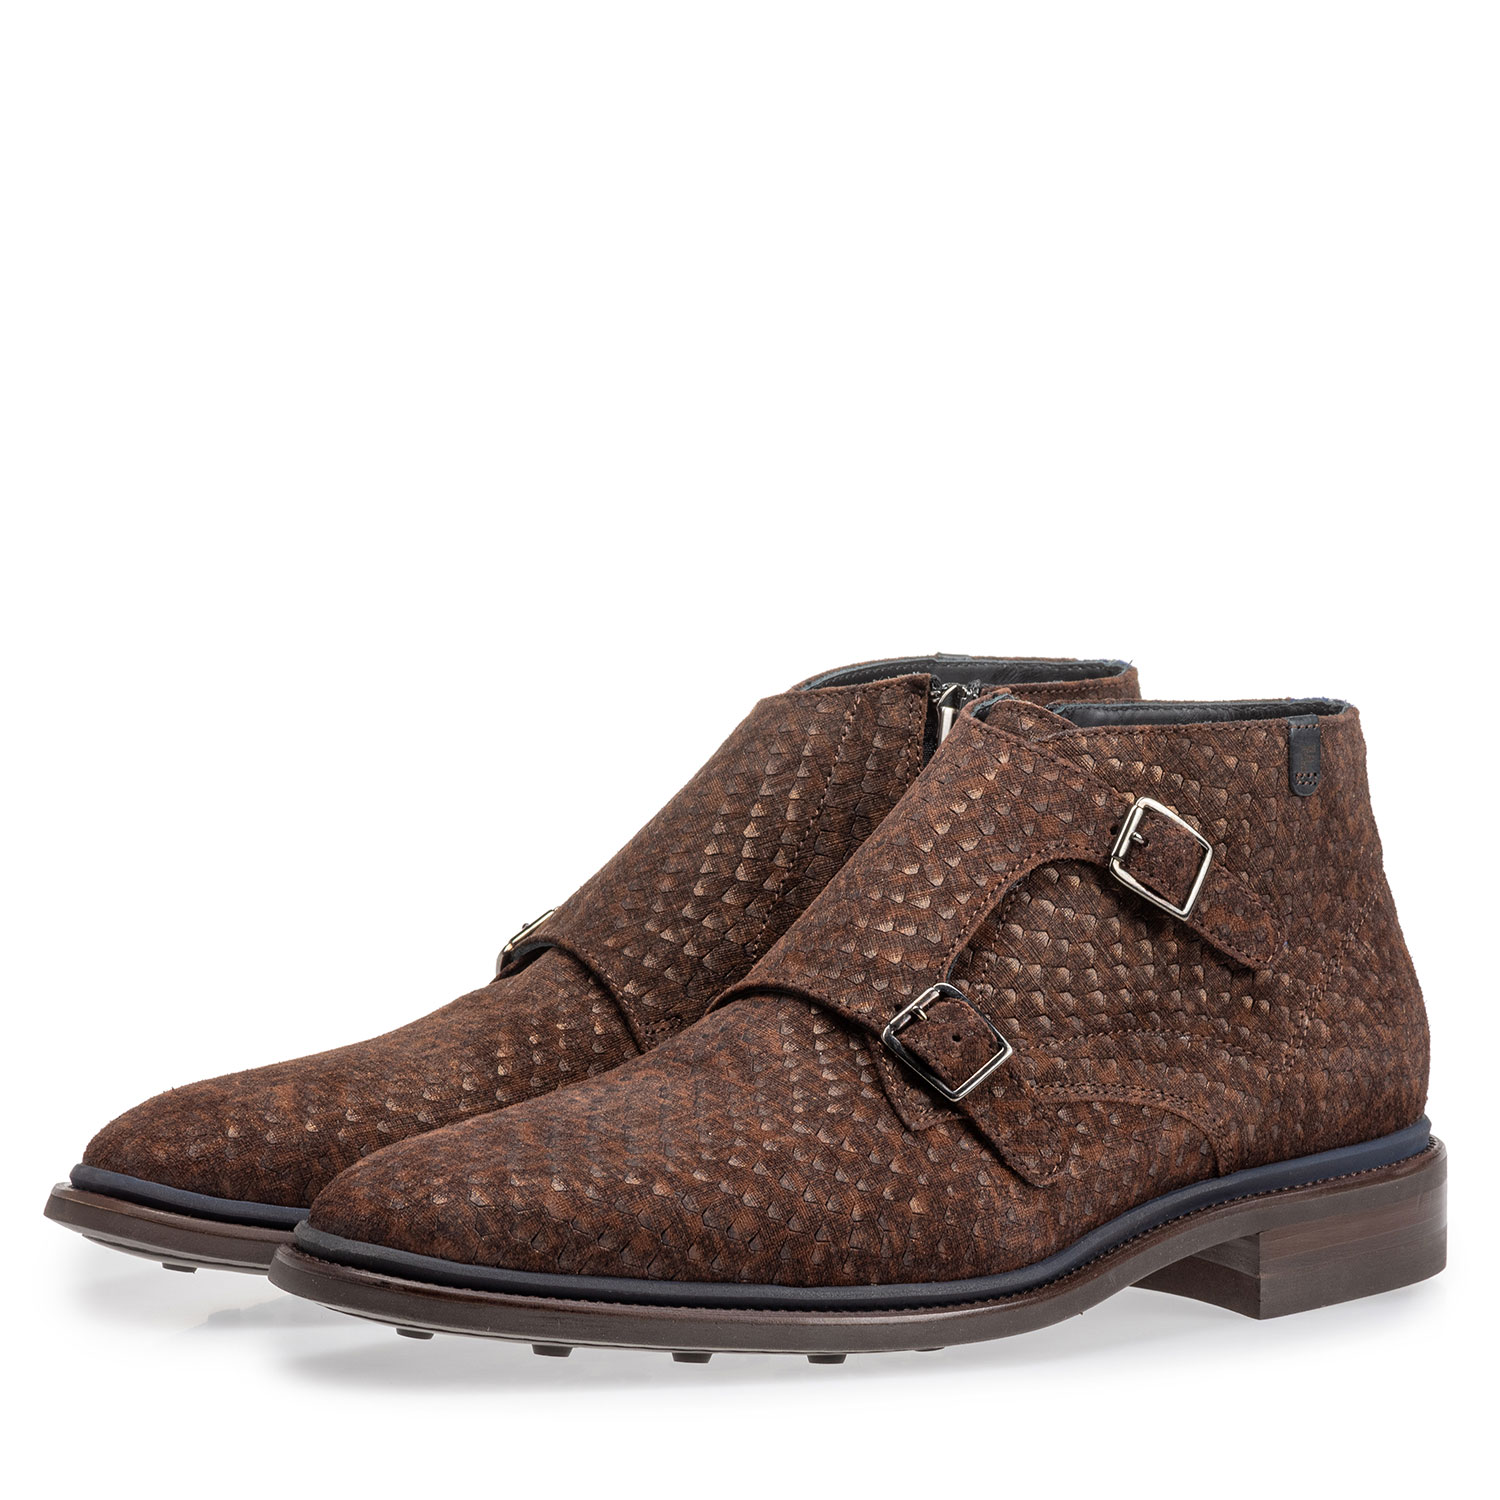 10672/05 - Boot with buckle closure dark brown